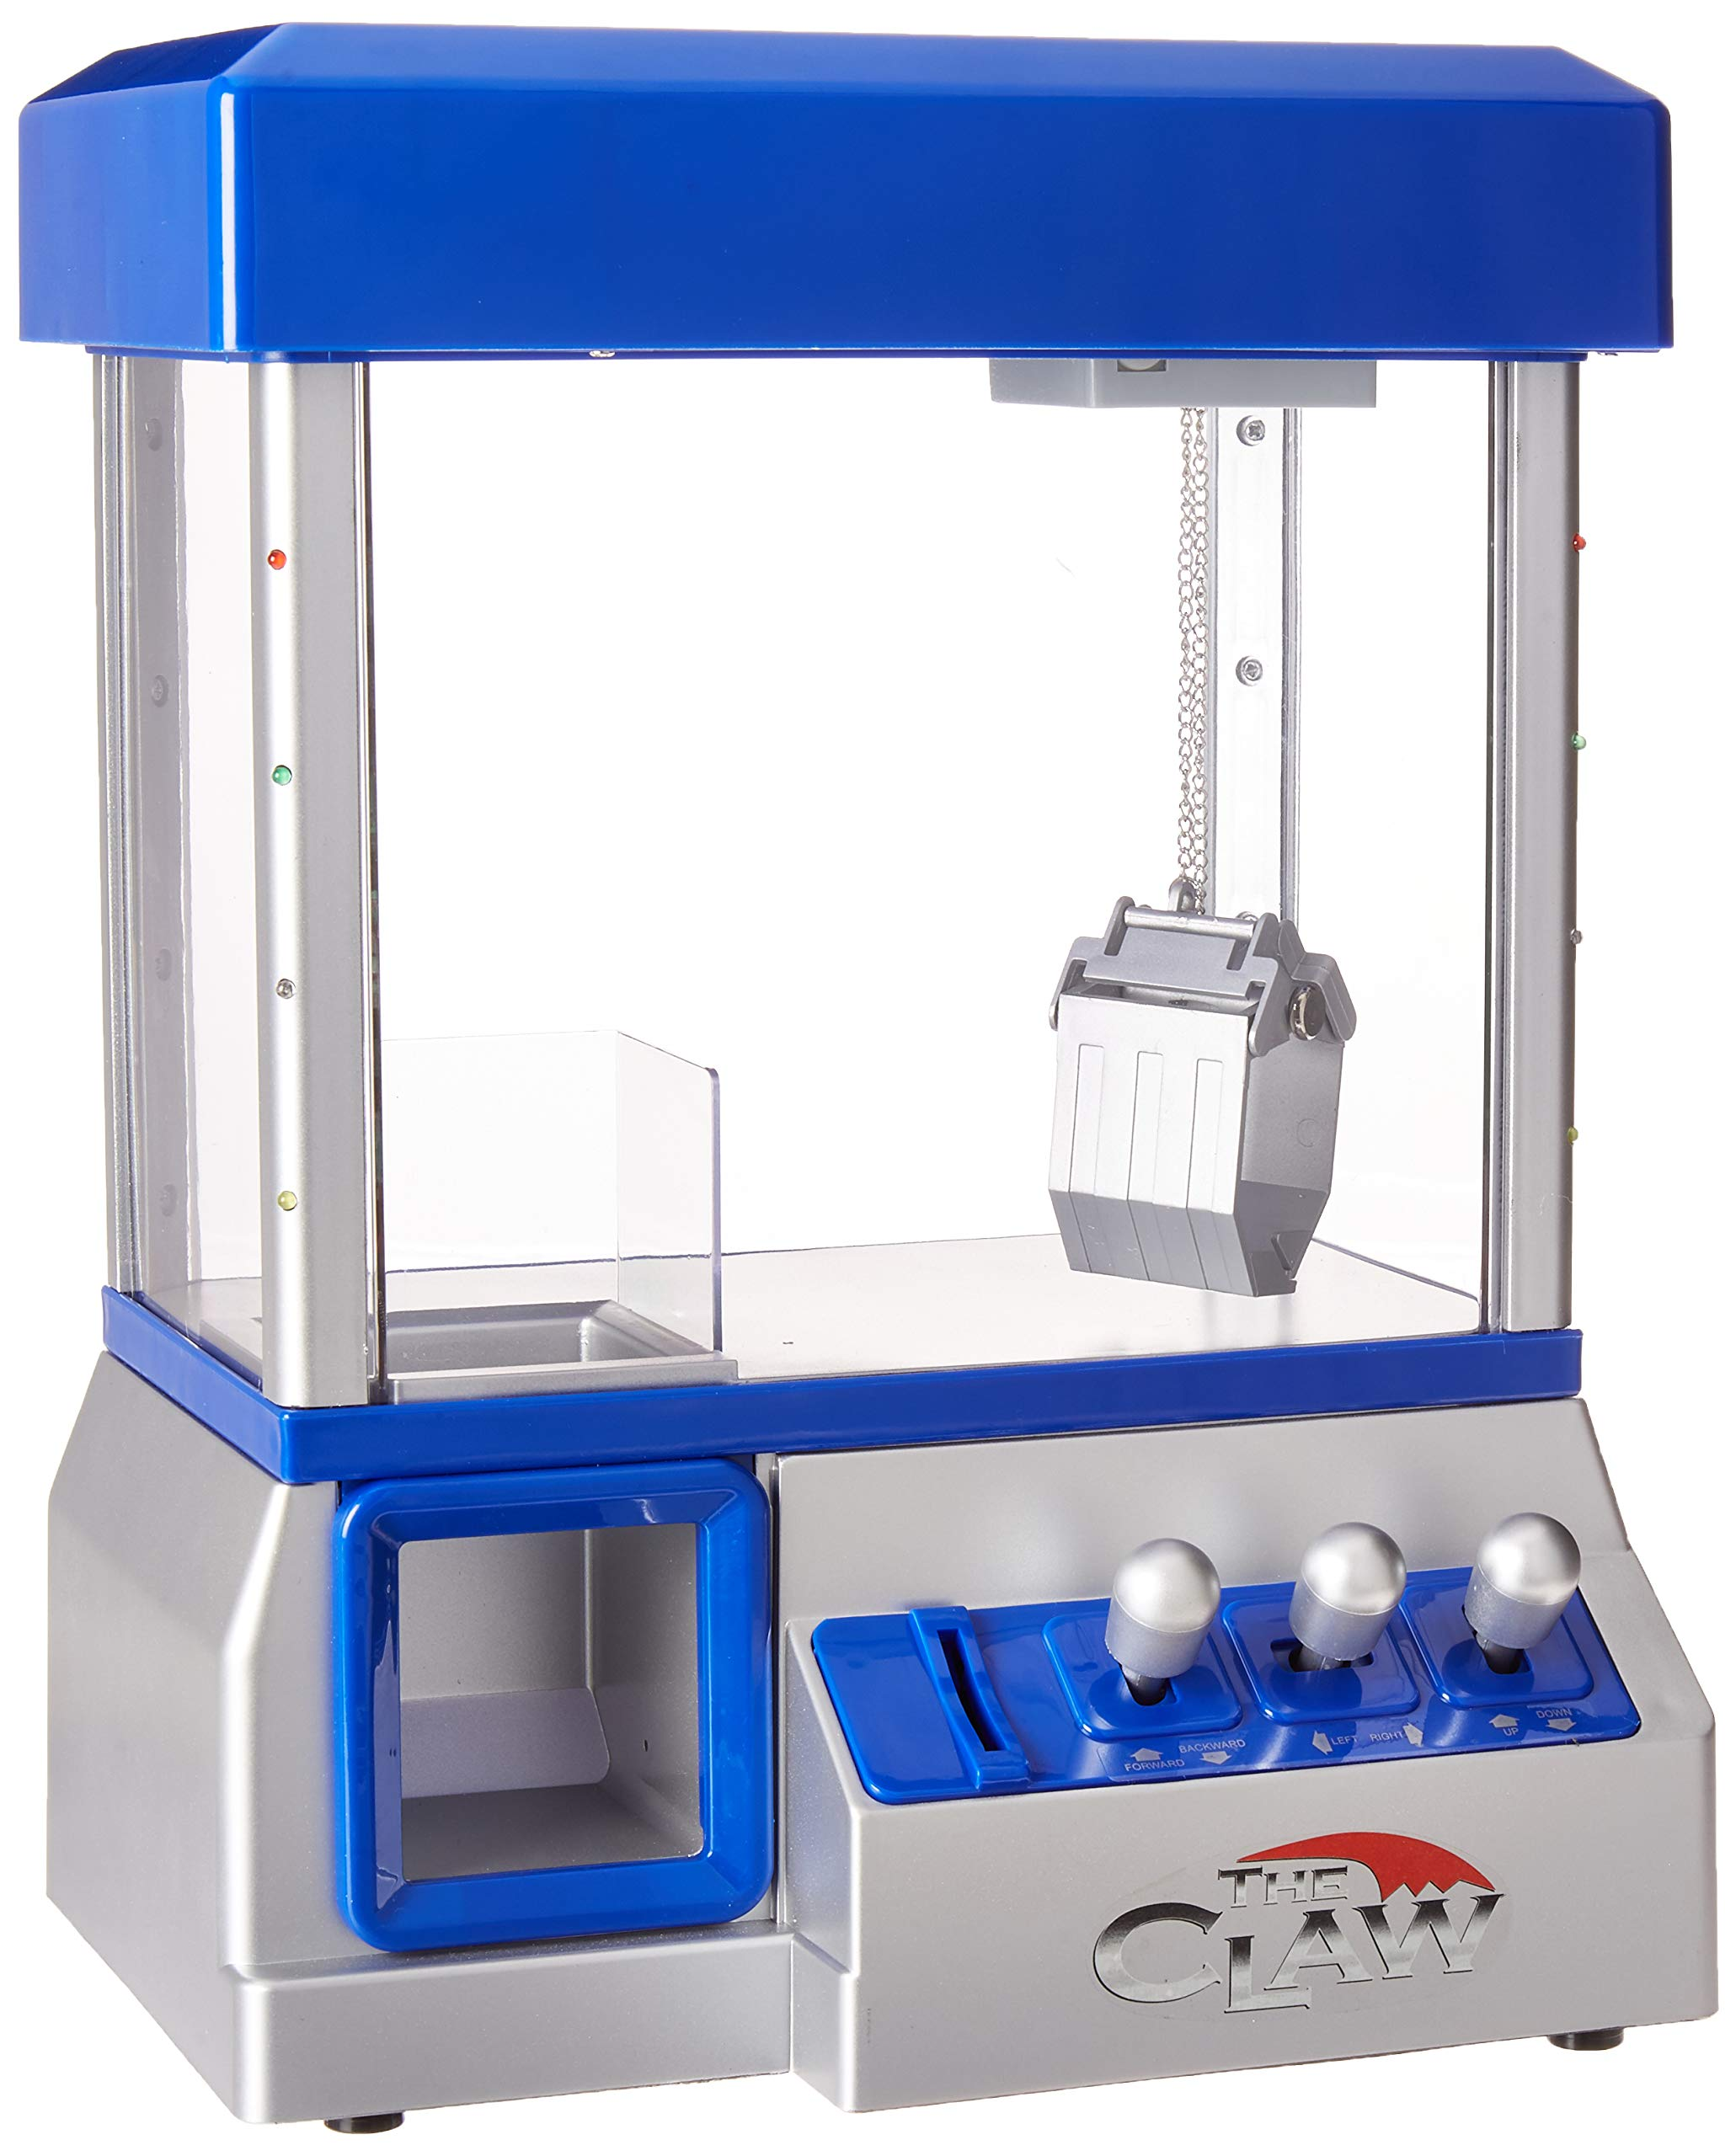 Claw Machine - Arcade Mini Toy Grabber Machine for Kids - Candy Machine- Retro Carnvial Music & Flashing Lights- Best Birthday Gift Game. Use Gumballs, Candy, Toys, or Small Prizes (Blue) by Define Essentials